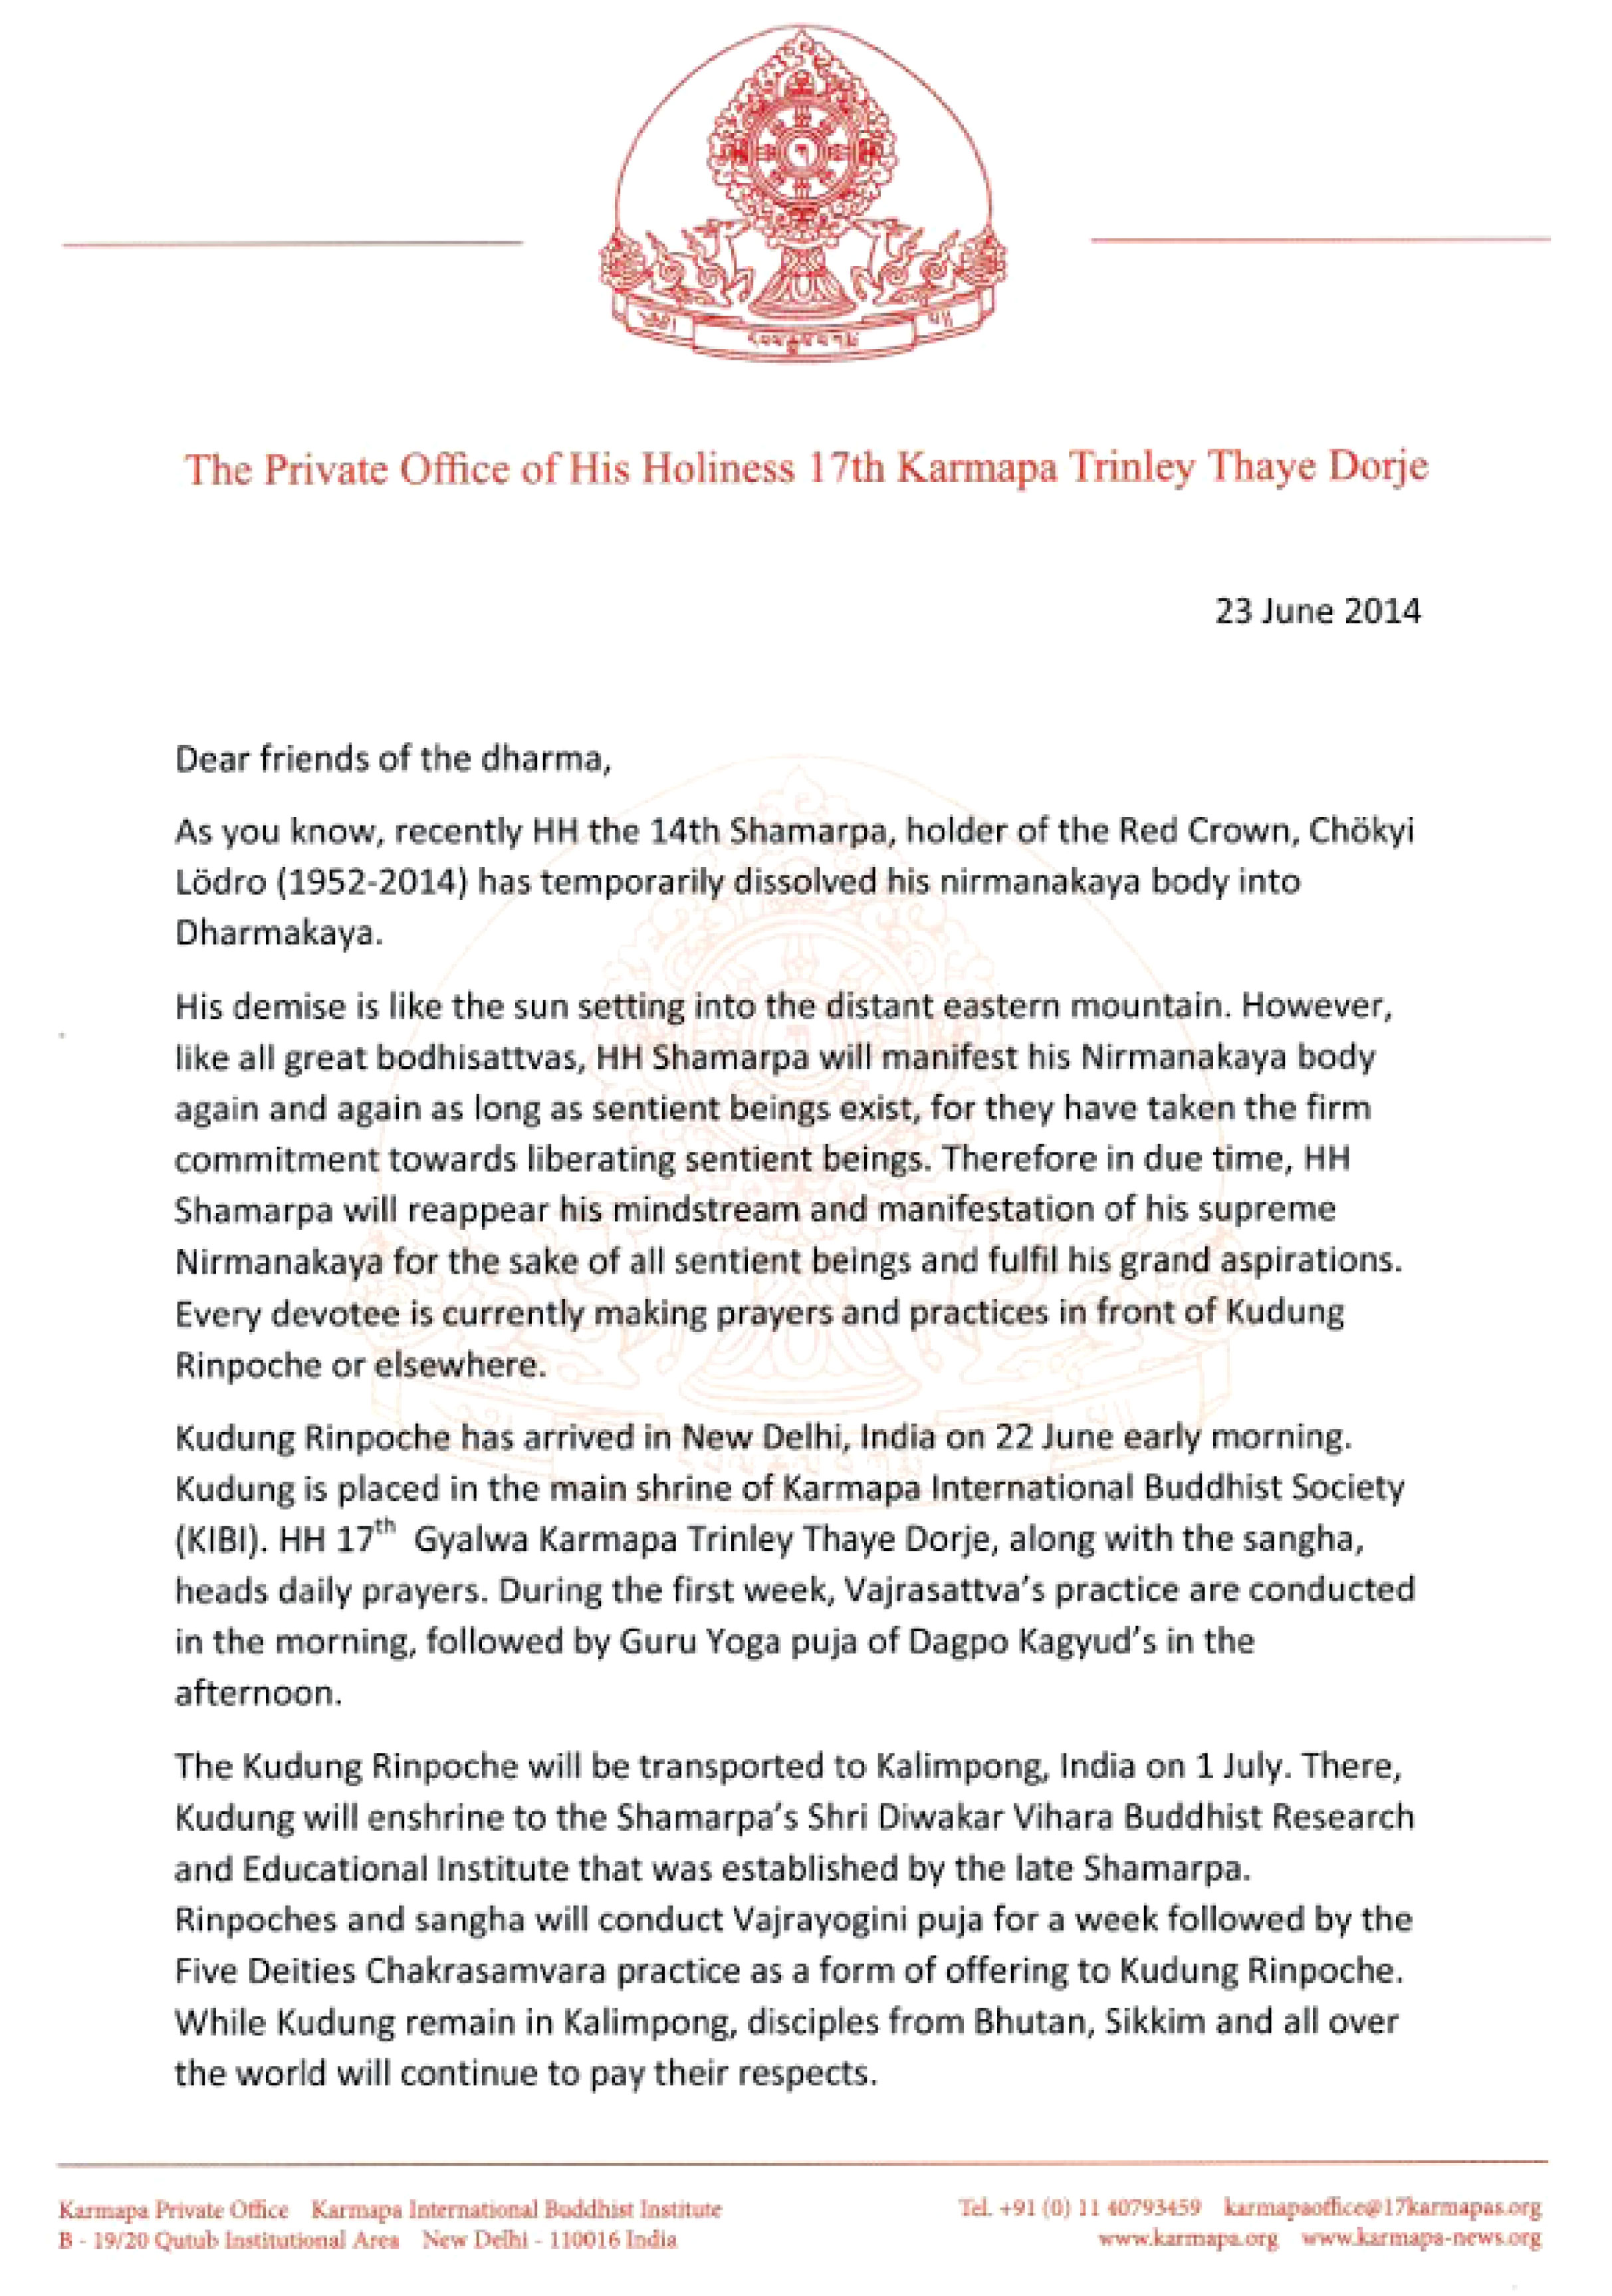 Message from The Private Office of His Holliness 17th Karmapa Trinley Thaye Dorje regarding Kudung Rinpoche - Page 1